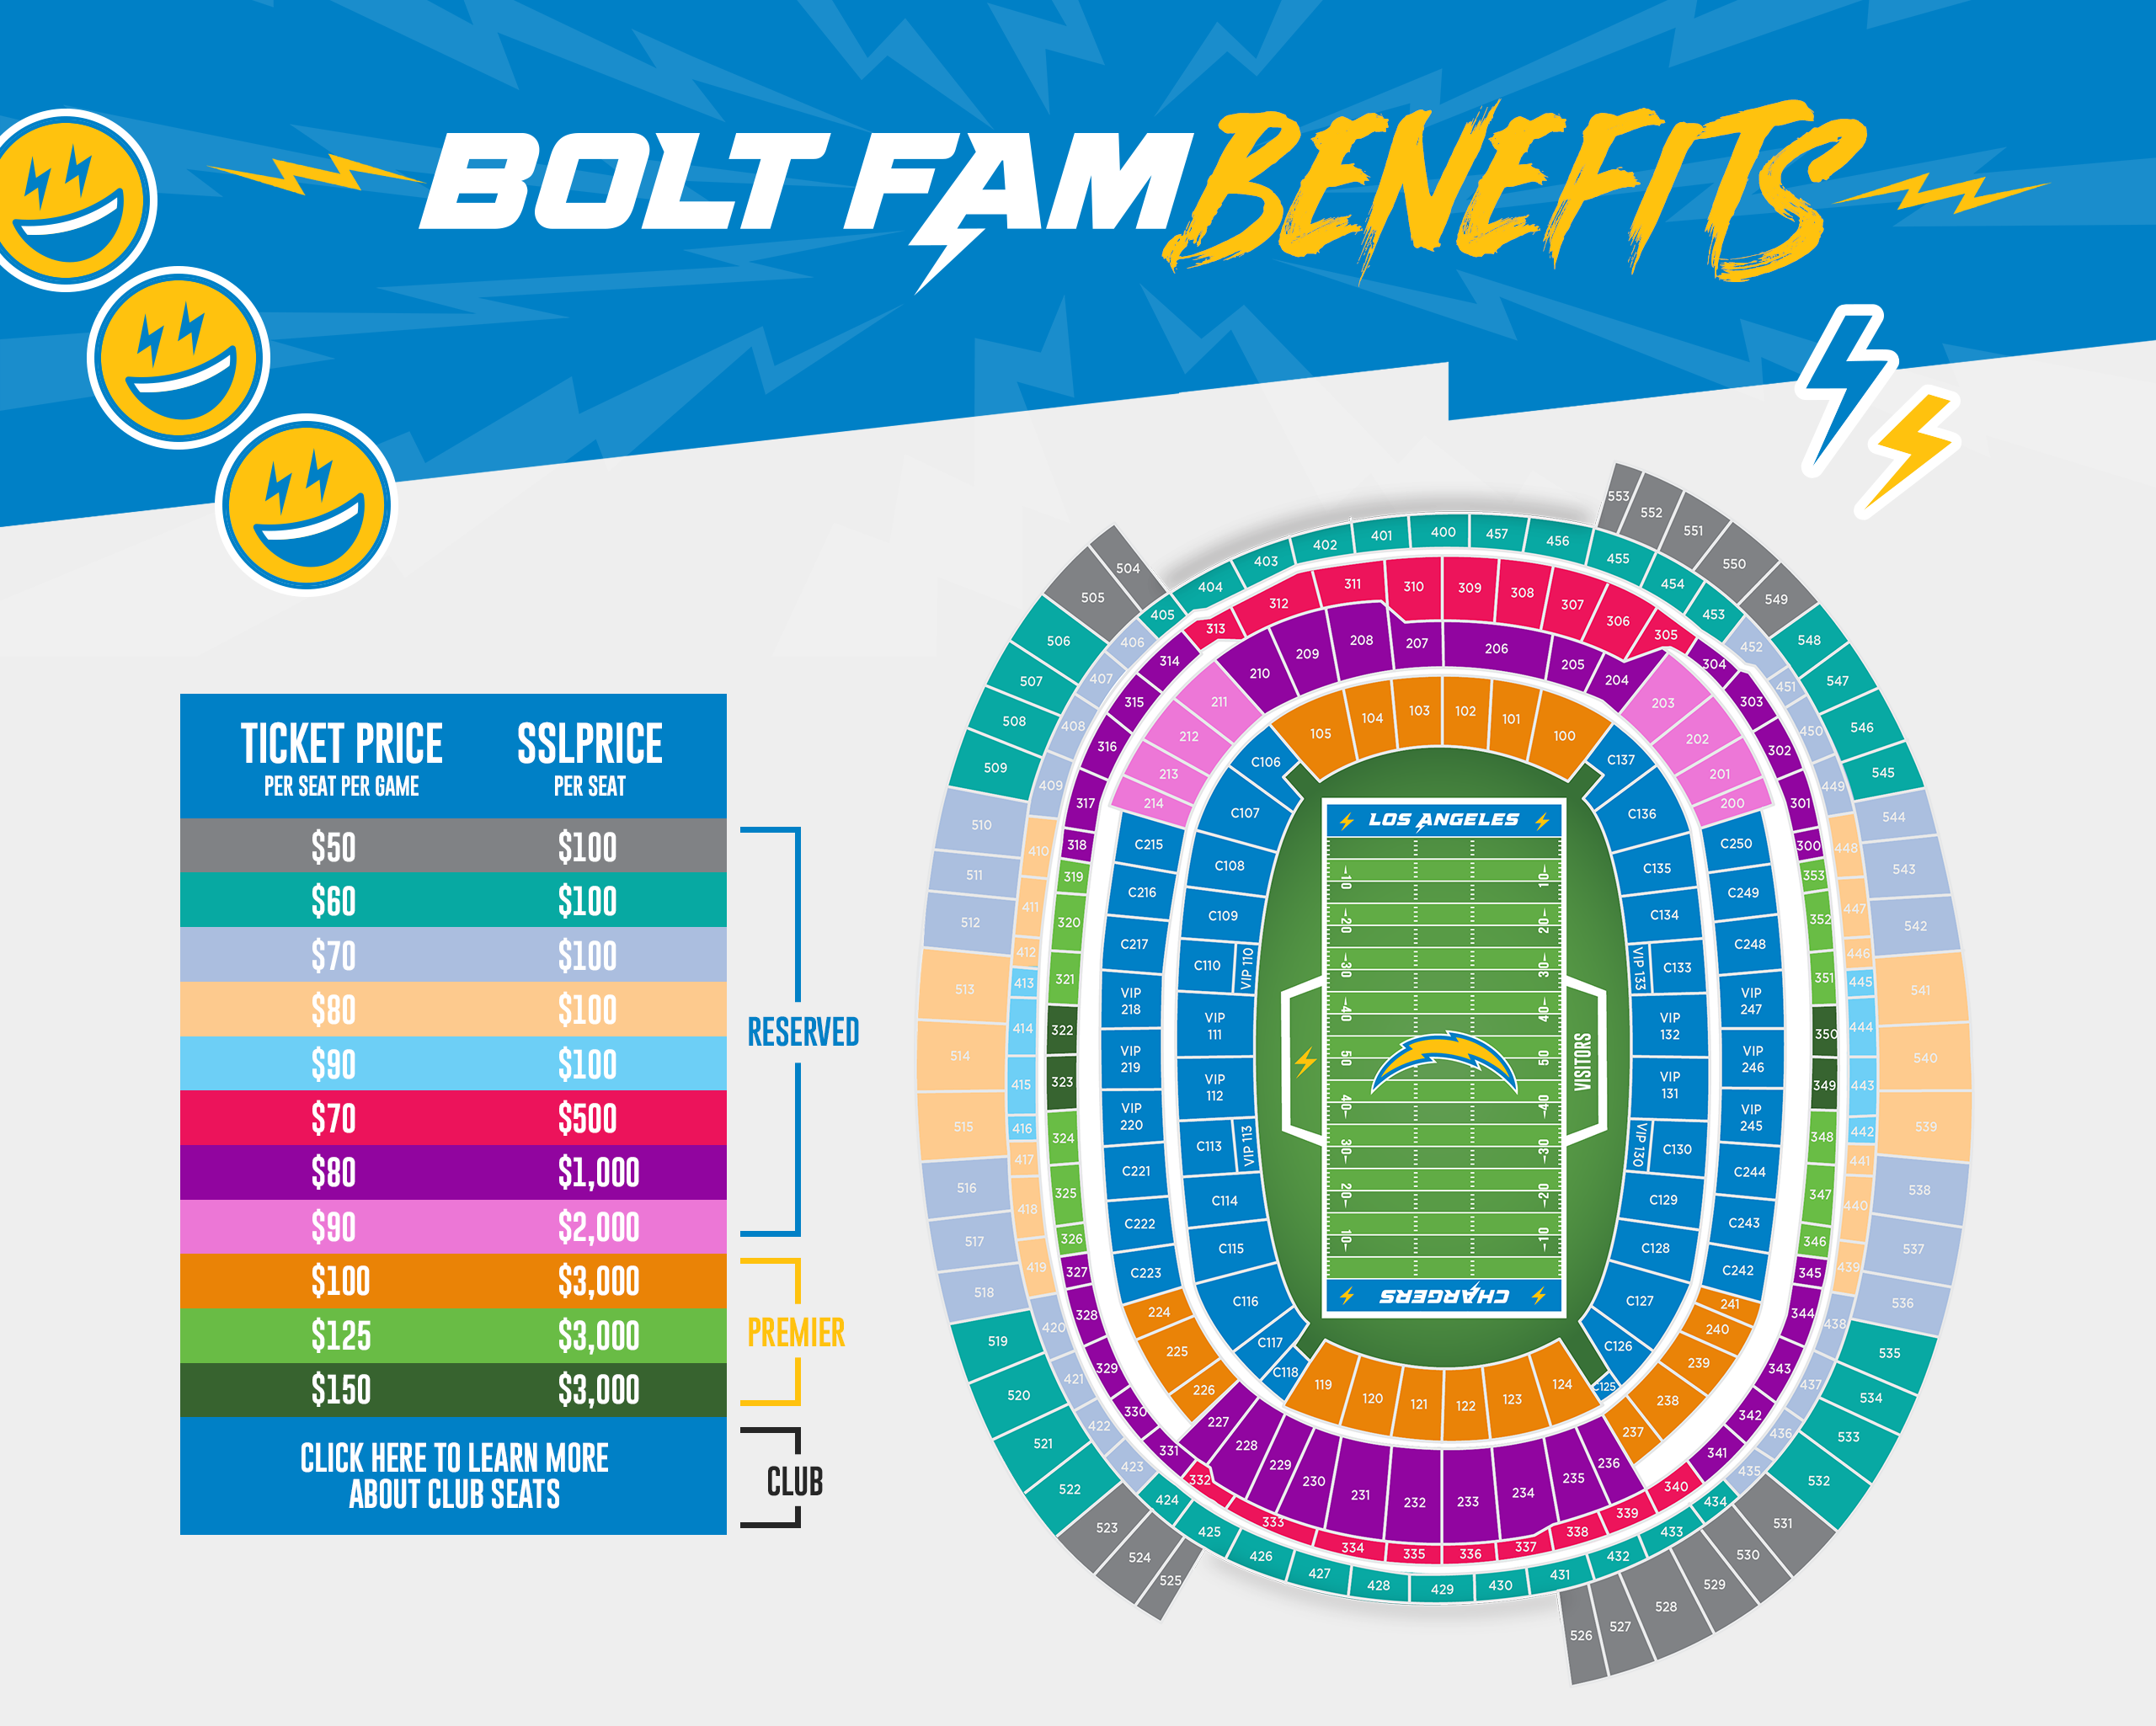 201013_Site_Tickets_BoltFam_Benefits_Landing_Page_Header